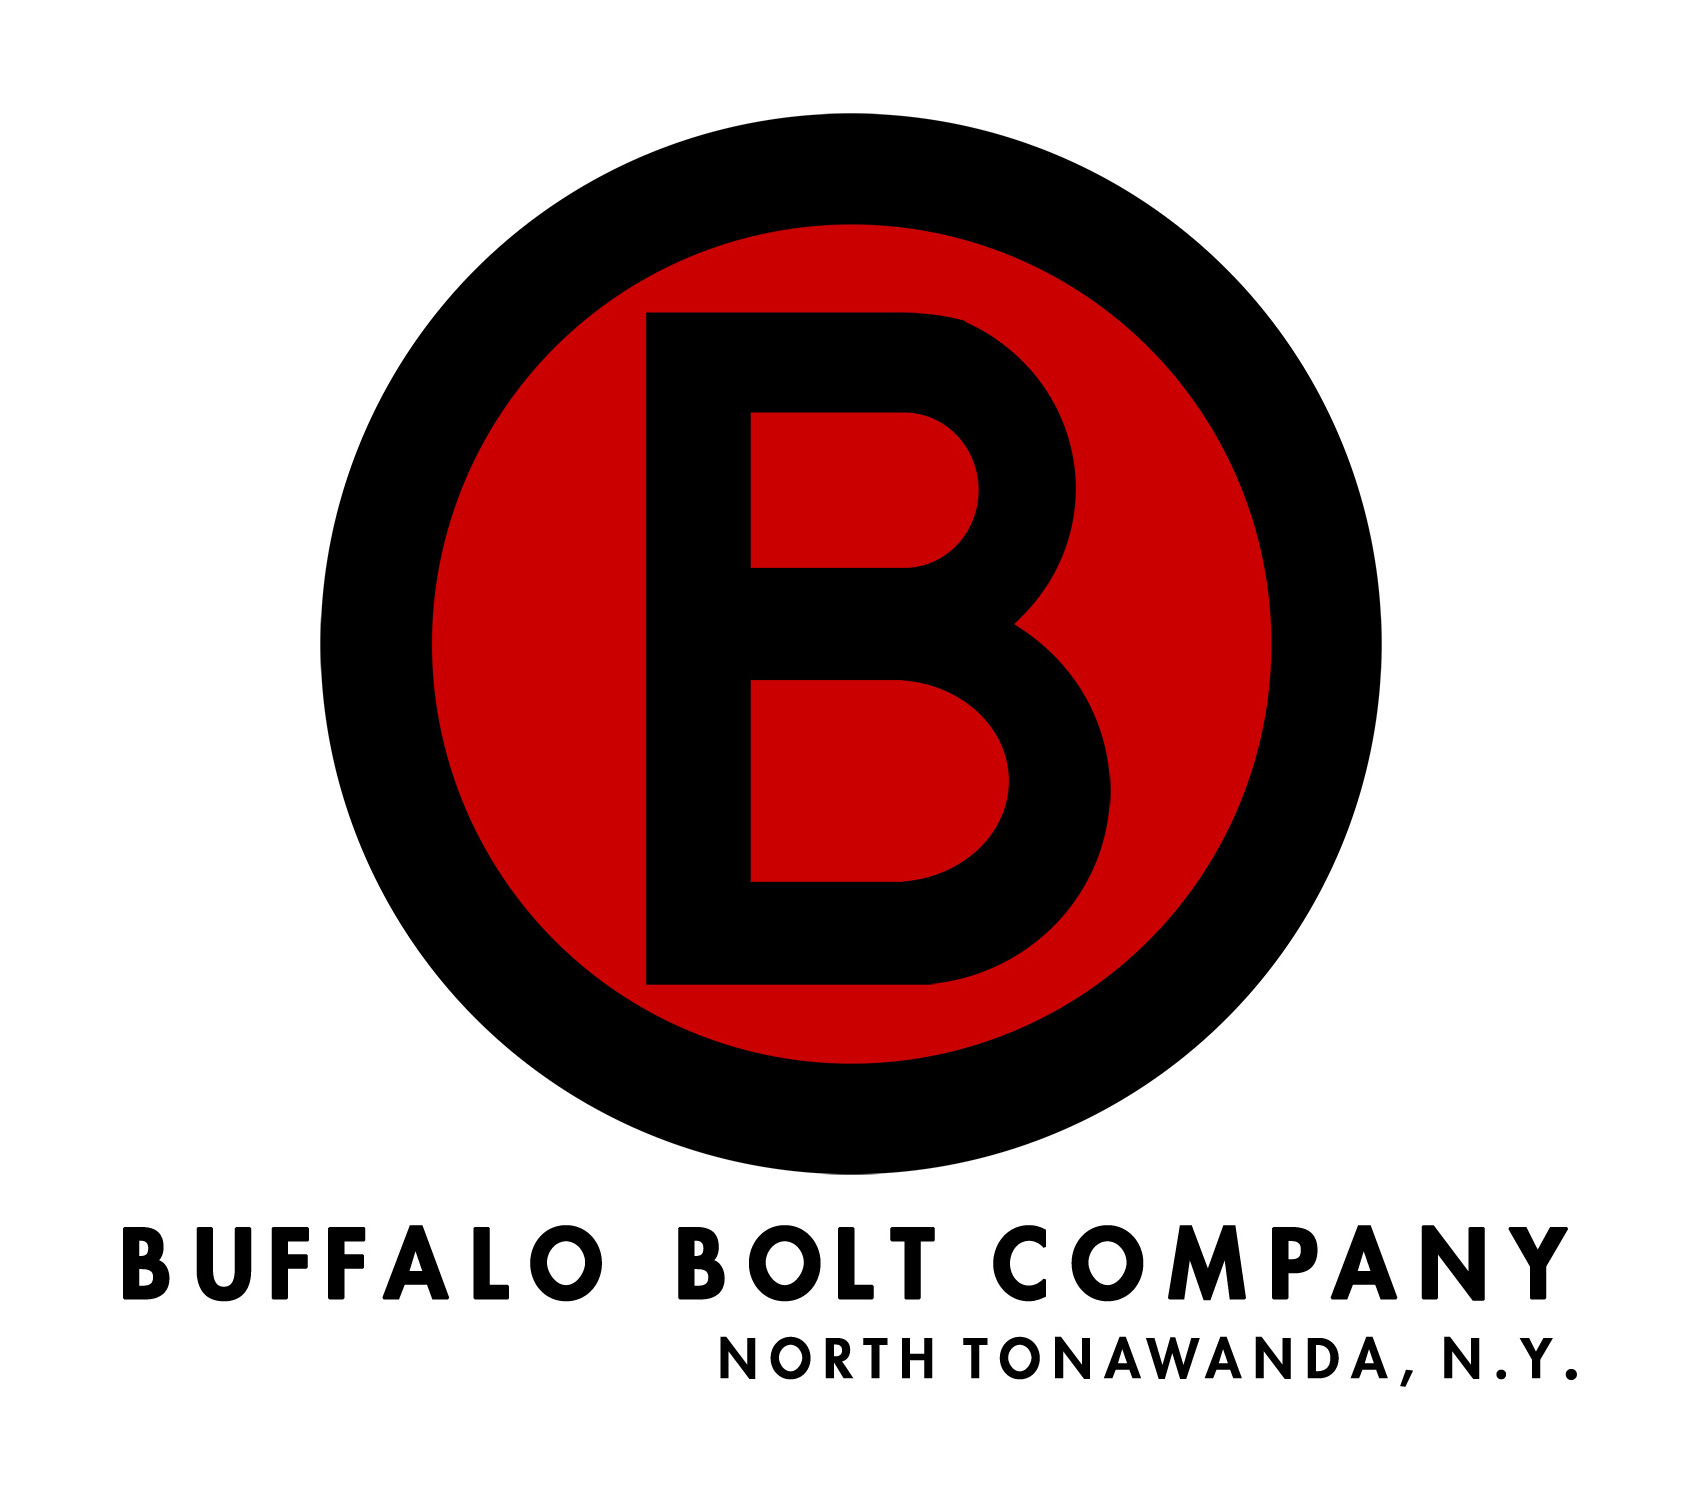 Buffalo Bolt Company with red - MEDIUM.jpg